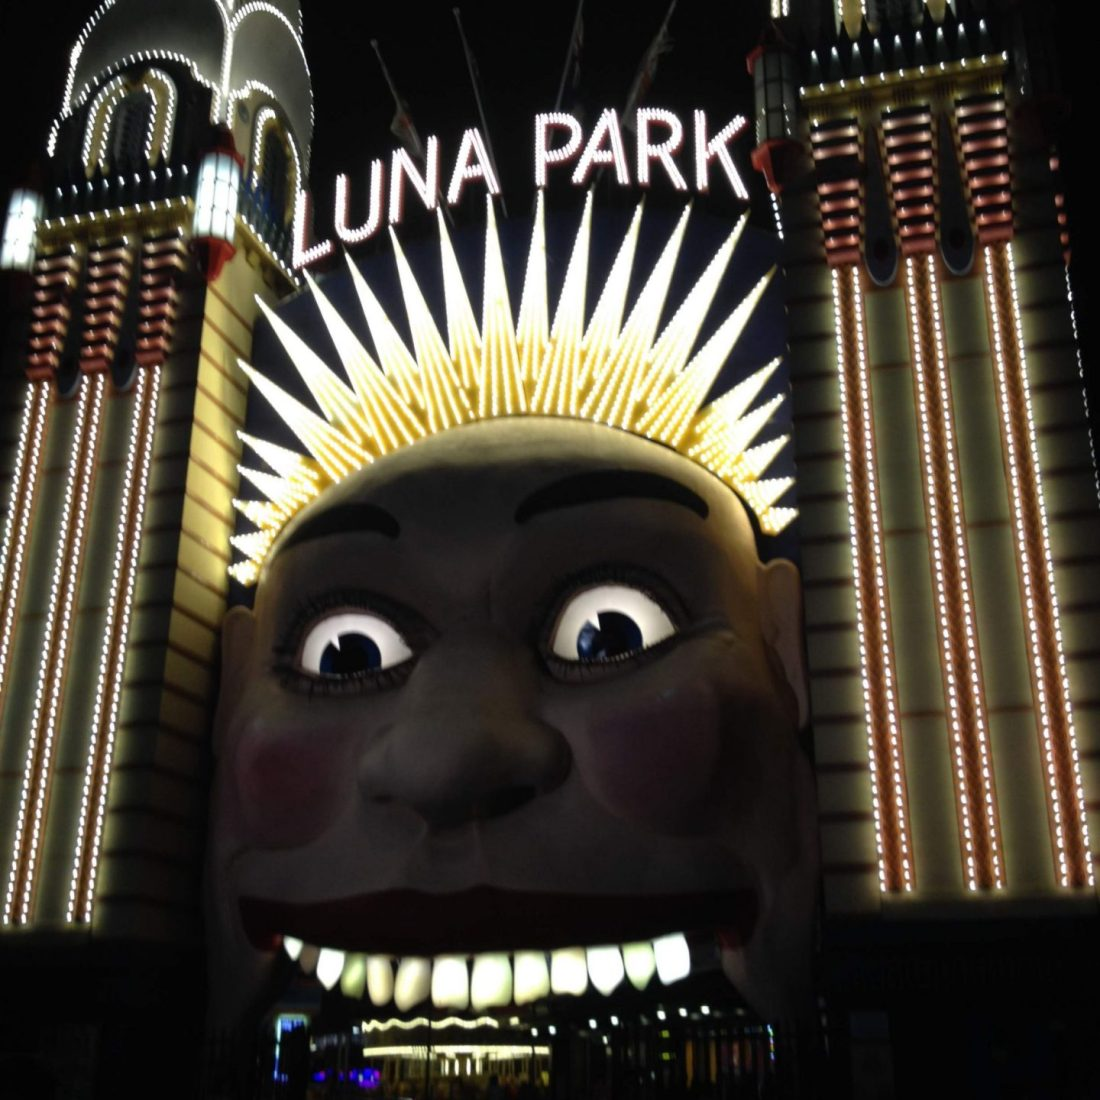 Luna Park, Sydney at night